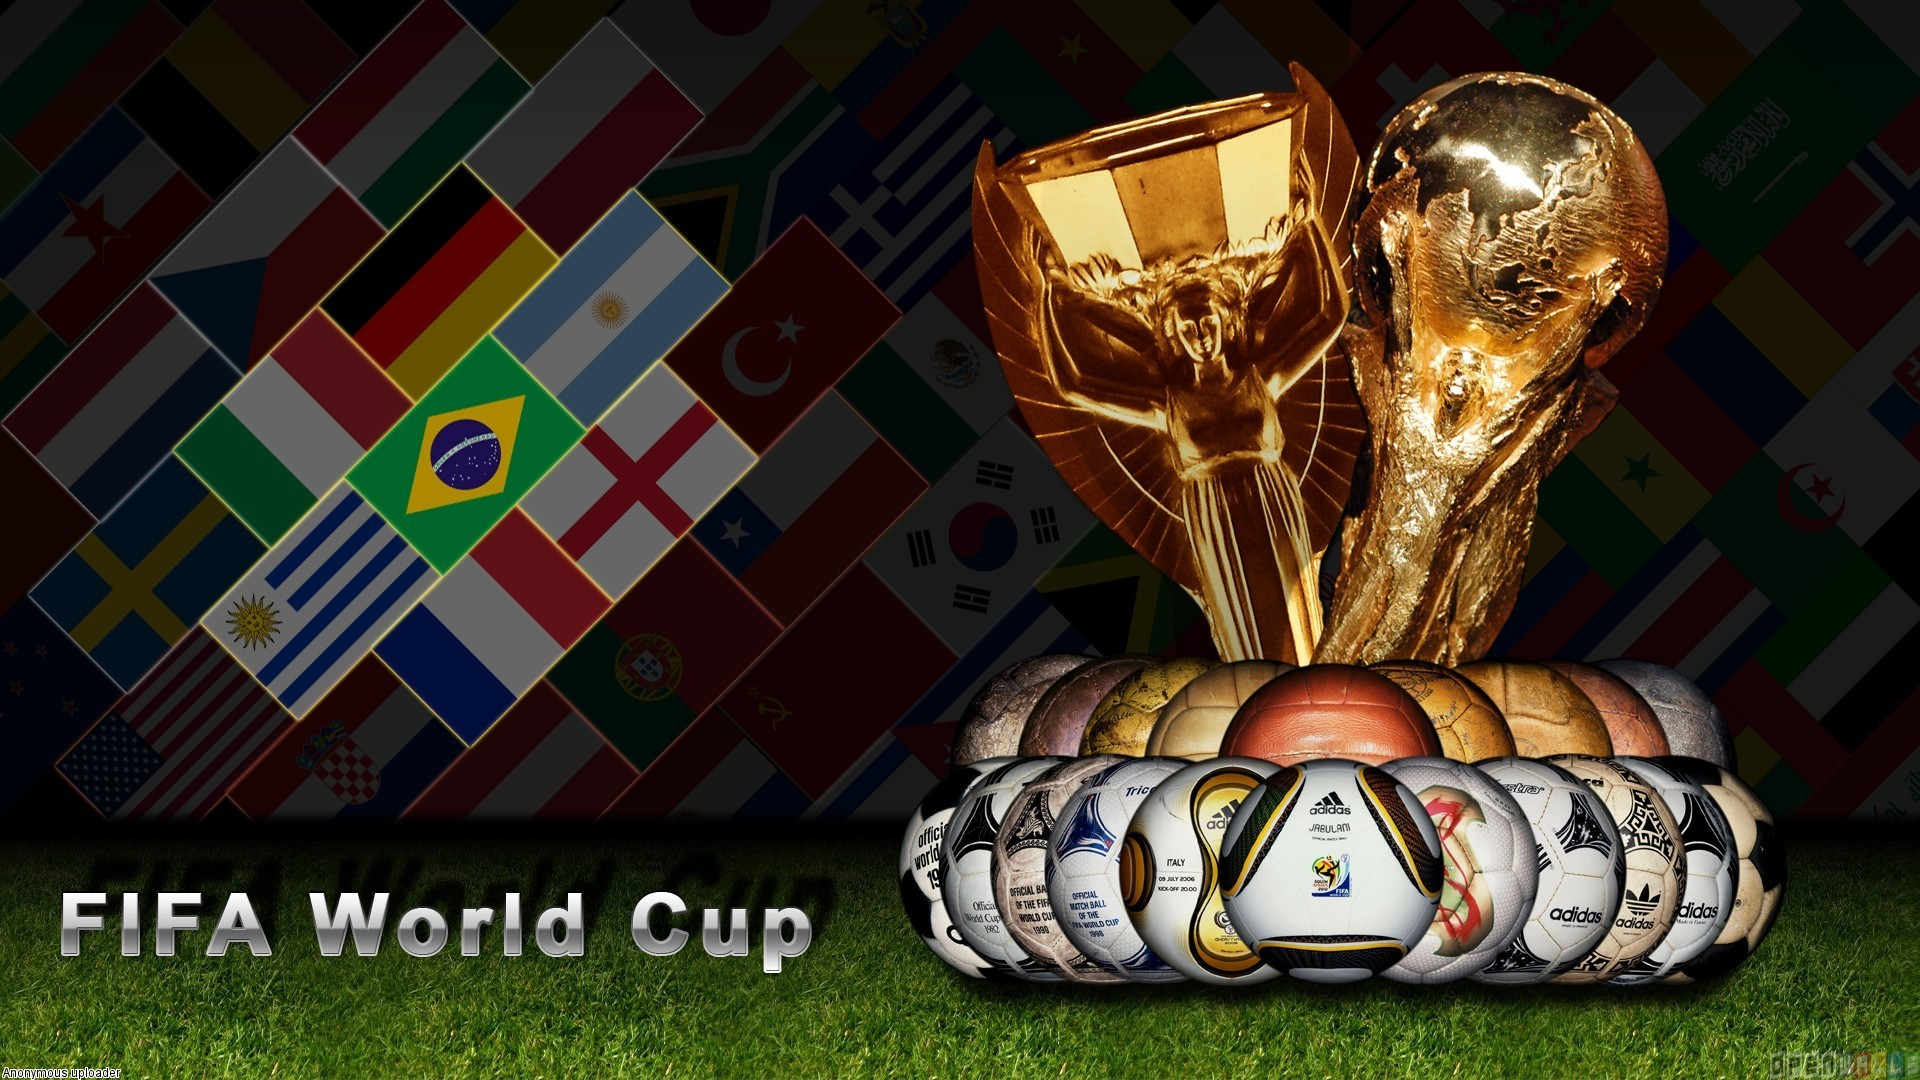 Fifa World Cup 2014 Brazil Background – HD Wallpapers Wallpaper